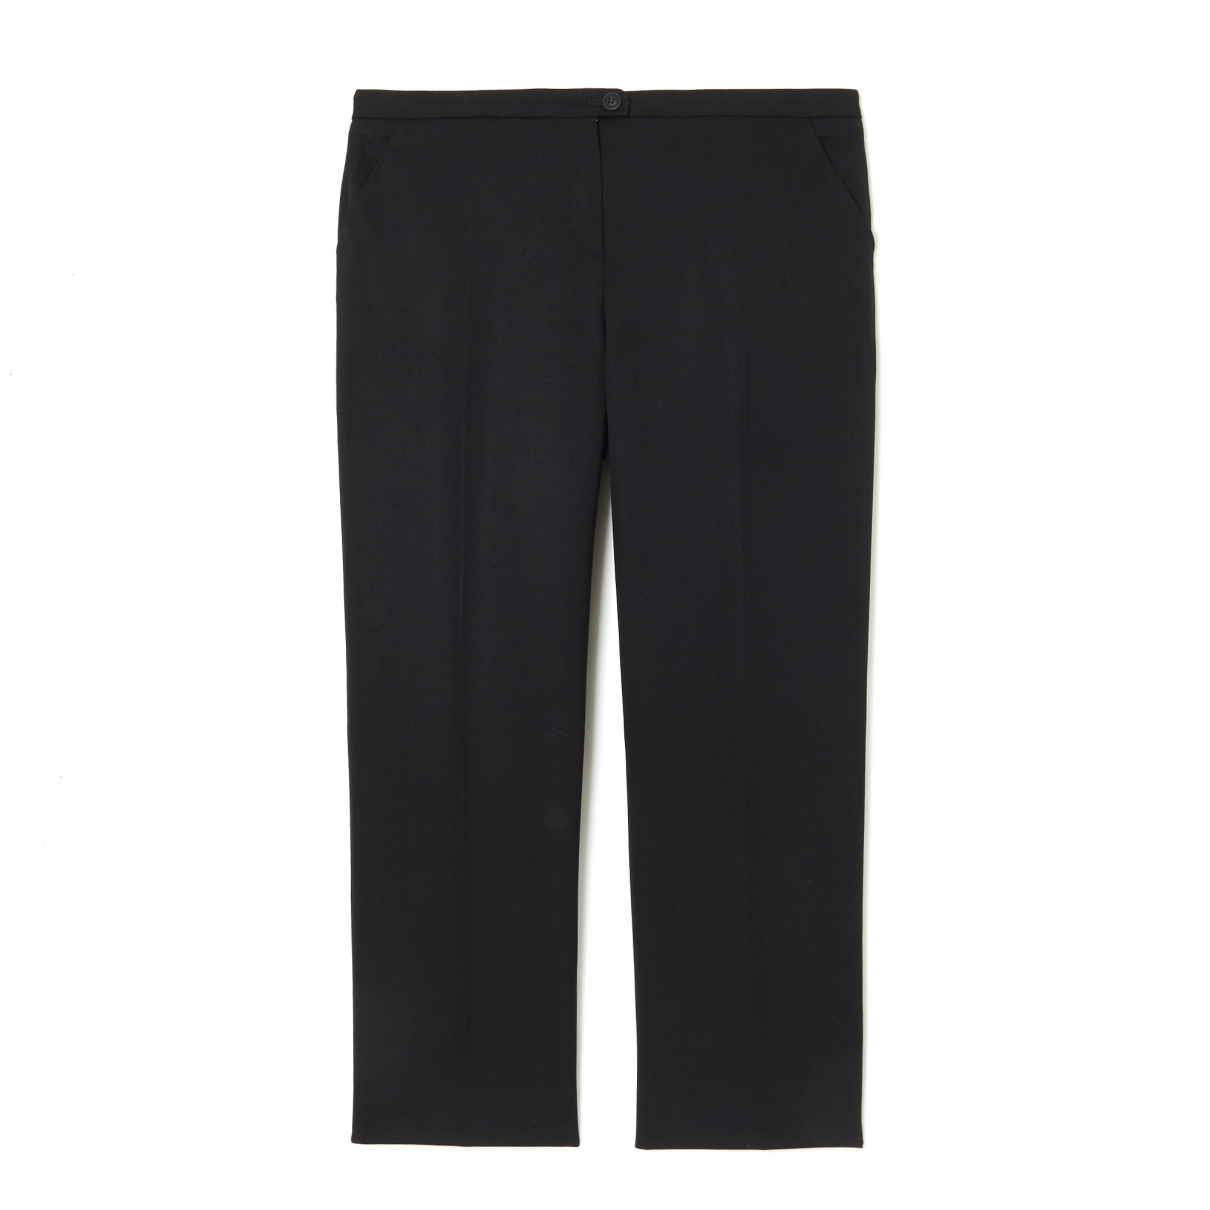 Givenchy \N Black Wool Trousers for Women 38 FR